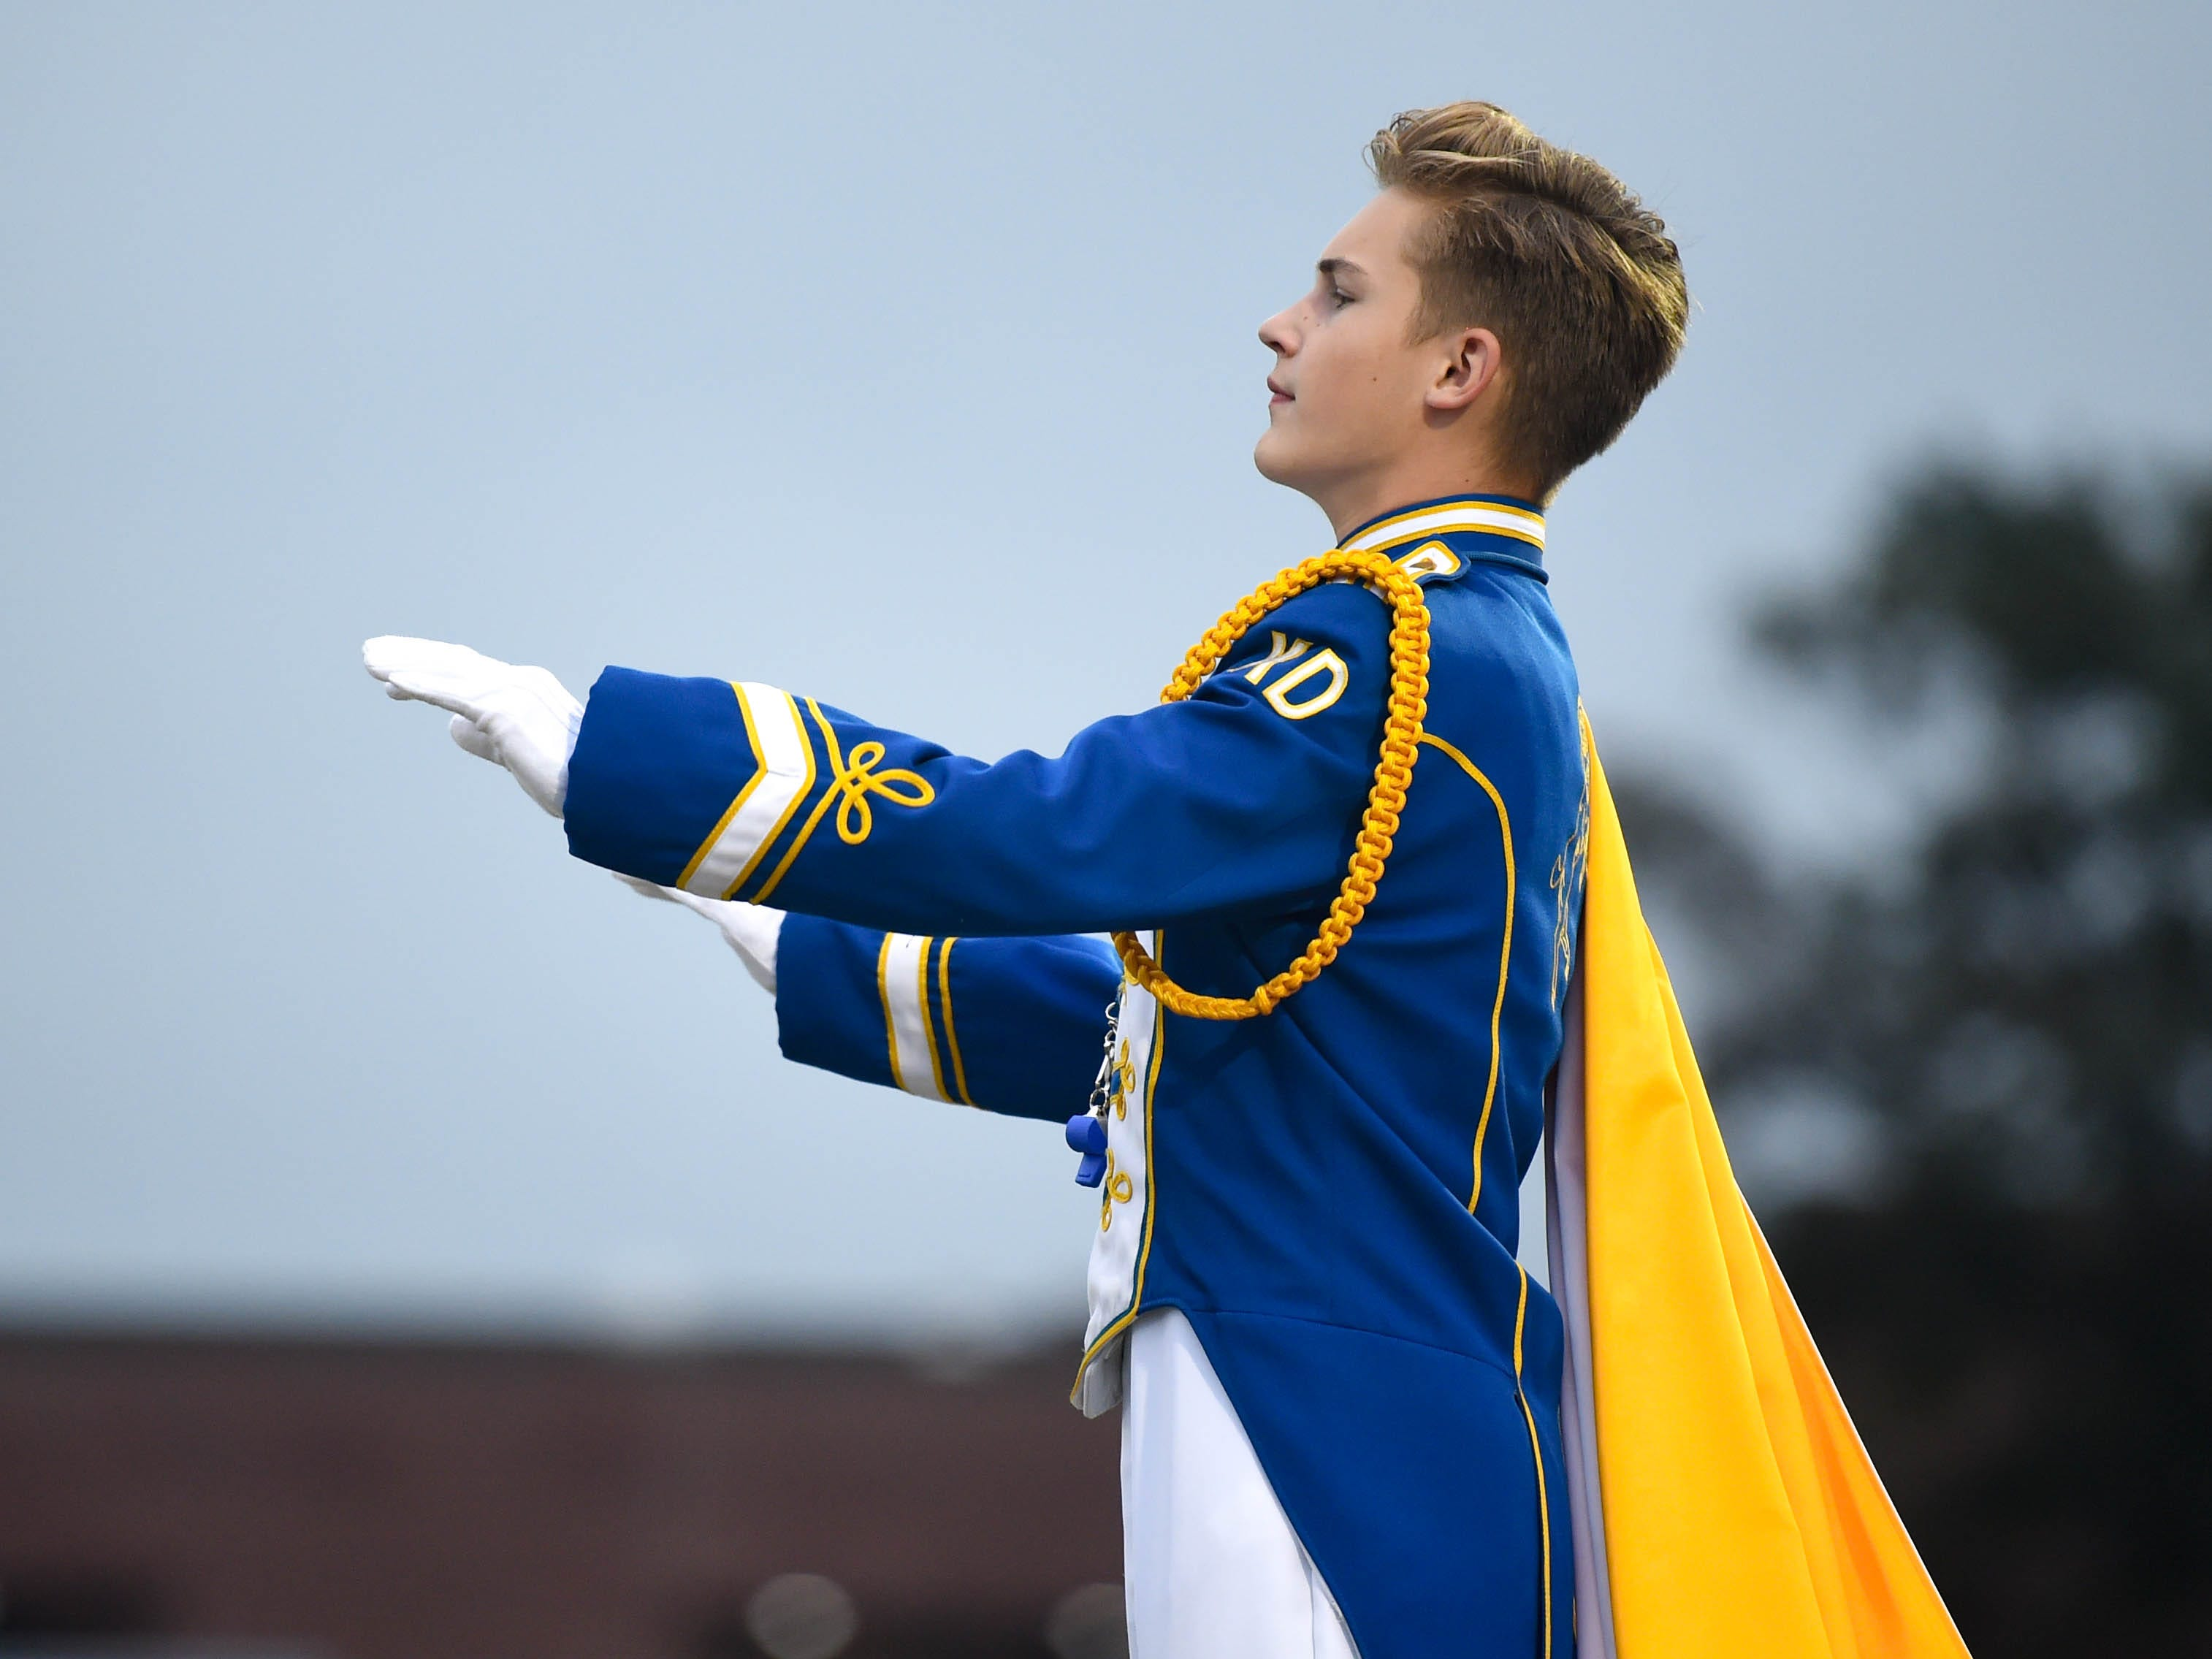 Kennard-Dale's conductor guides the band, Friday, September 21, 2018. The York Suburban Trojans beat the Kennard-Dale Rams 31-25.